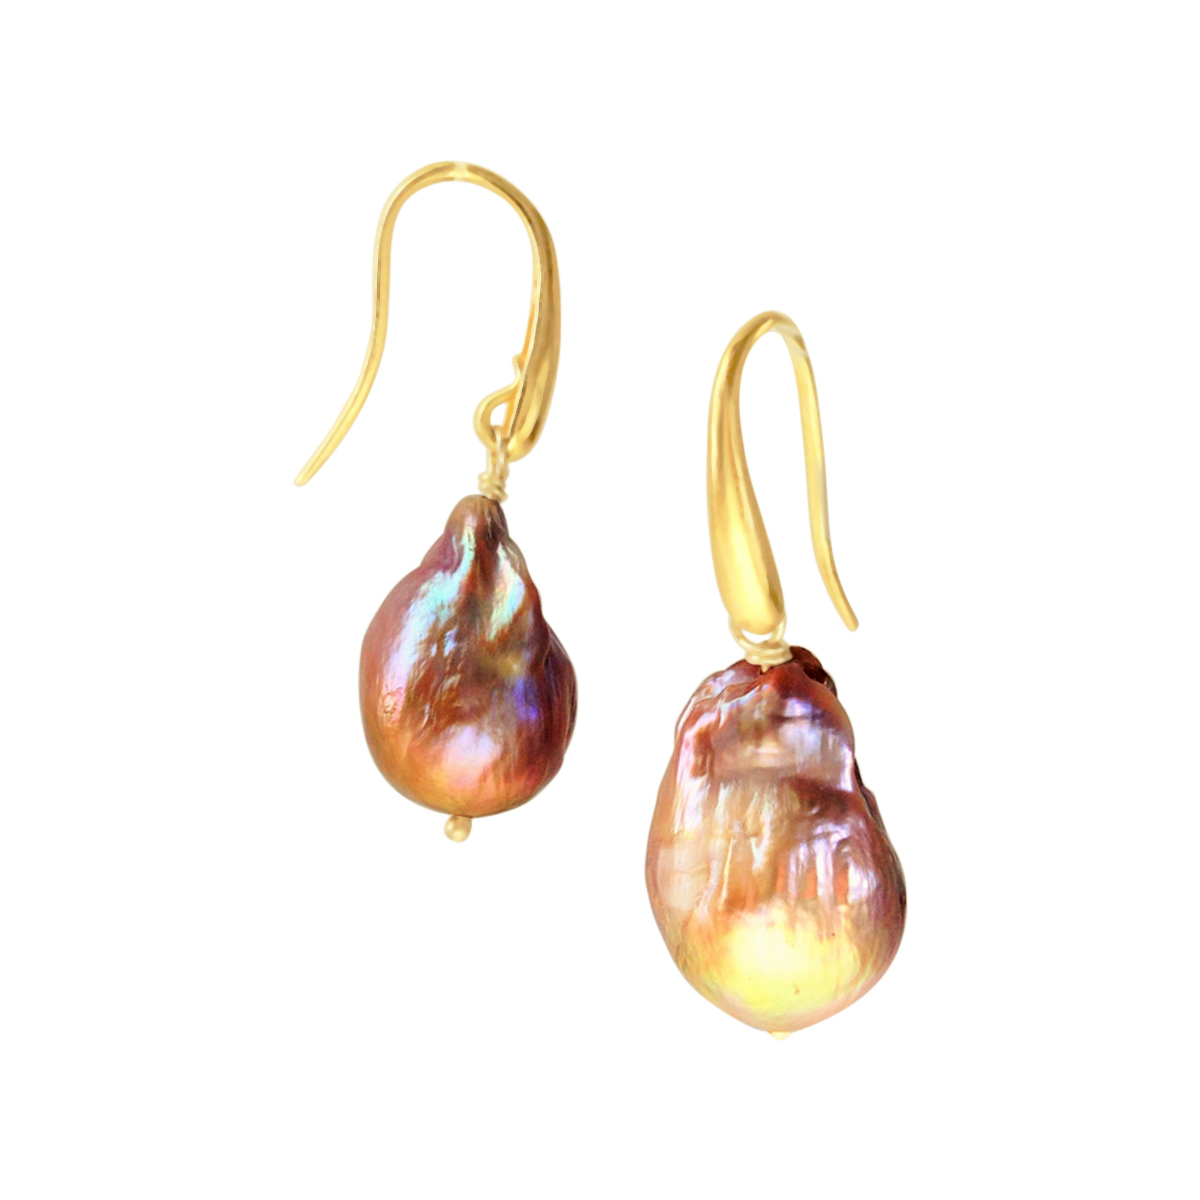 River Pearl earrings gold